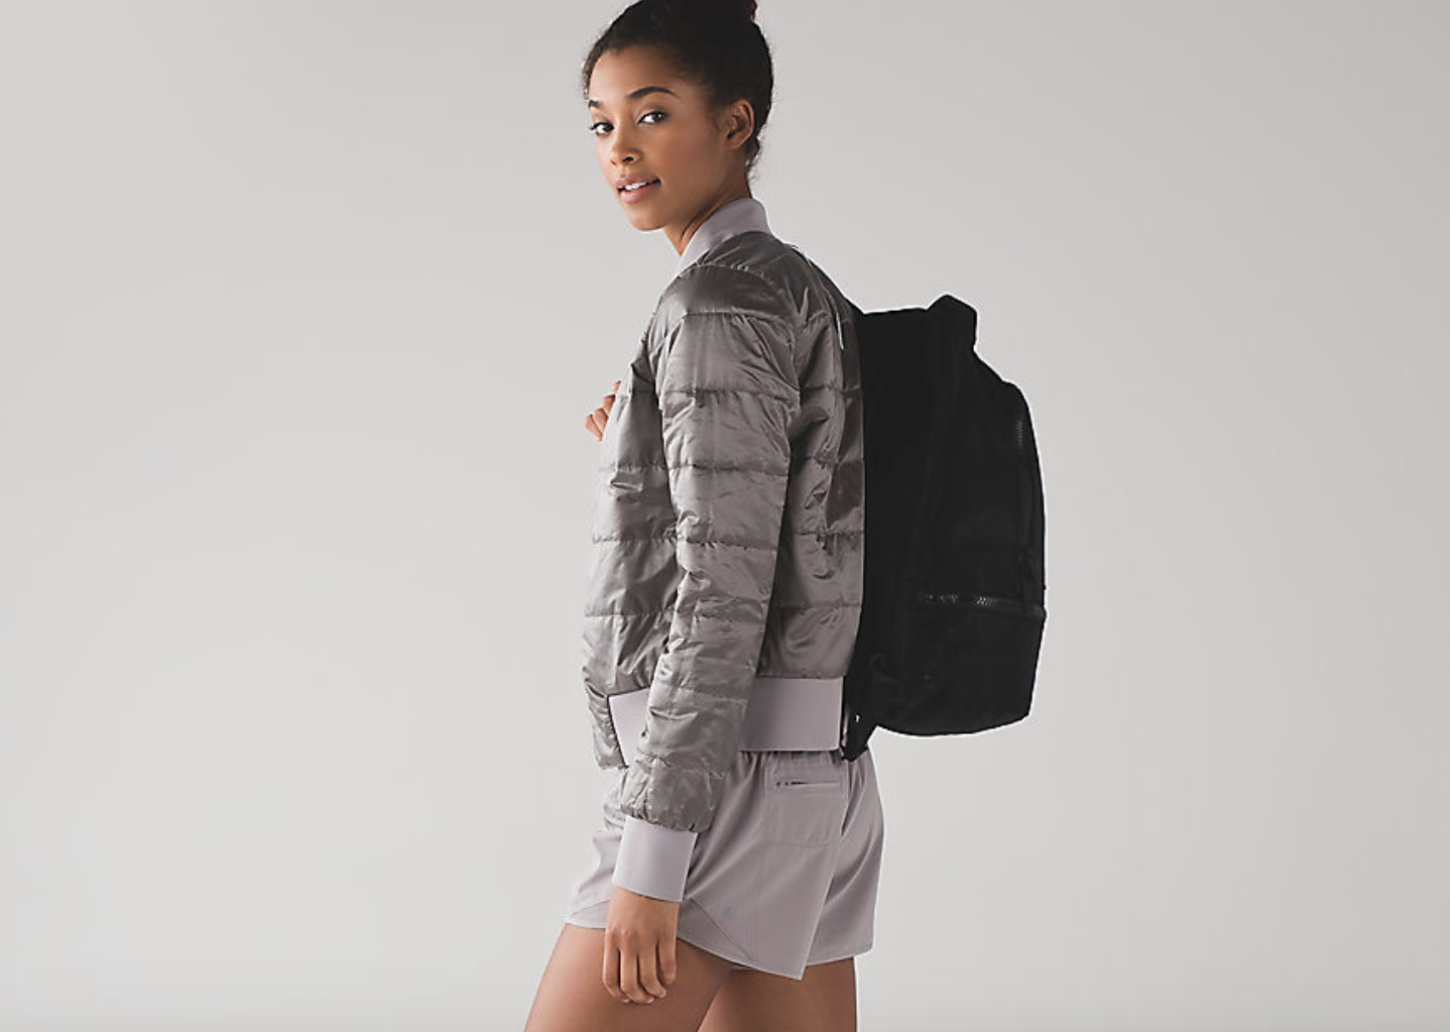 https://api.shopstyle.com/action/apiVisitRetailer?url=https%3A%2F%2Fshop.lululemon.com%2Fp%2Fwomen-shorts%2FHotty-Hot-Short-Long%2F_%2Fprod1510028%3Frcnt%3D55%26N%3D1z13ziiZ7z5%26cnt%3D71%26color%3DLW7ACQT_028603&site=www.shopstyle.ca&pid=uid6784-25288972-7